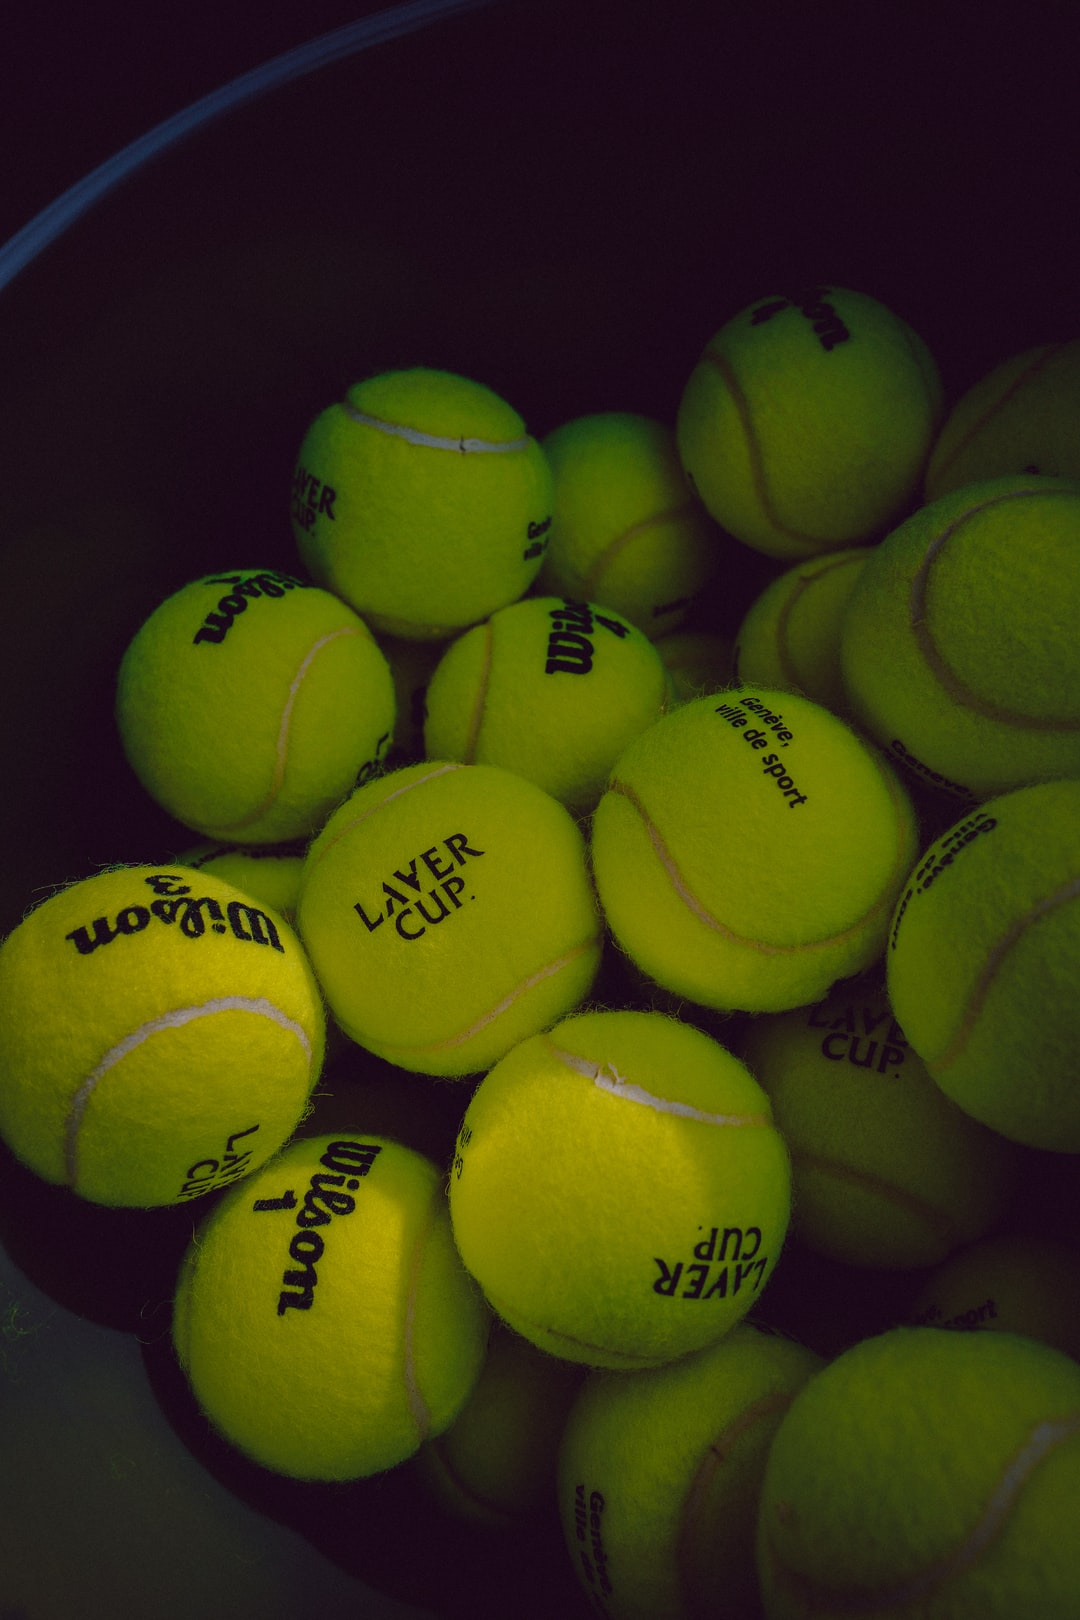 Time to play some tennis!